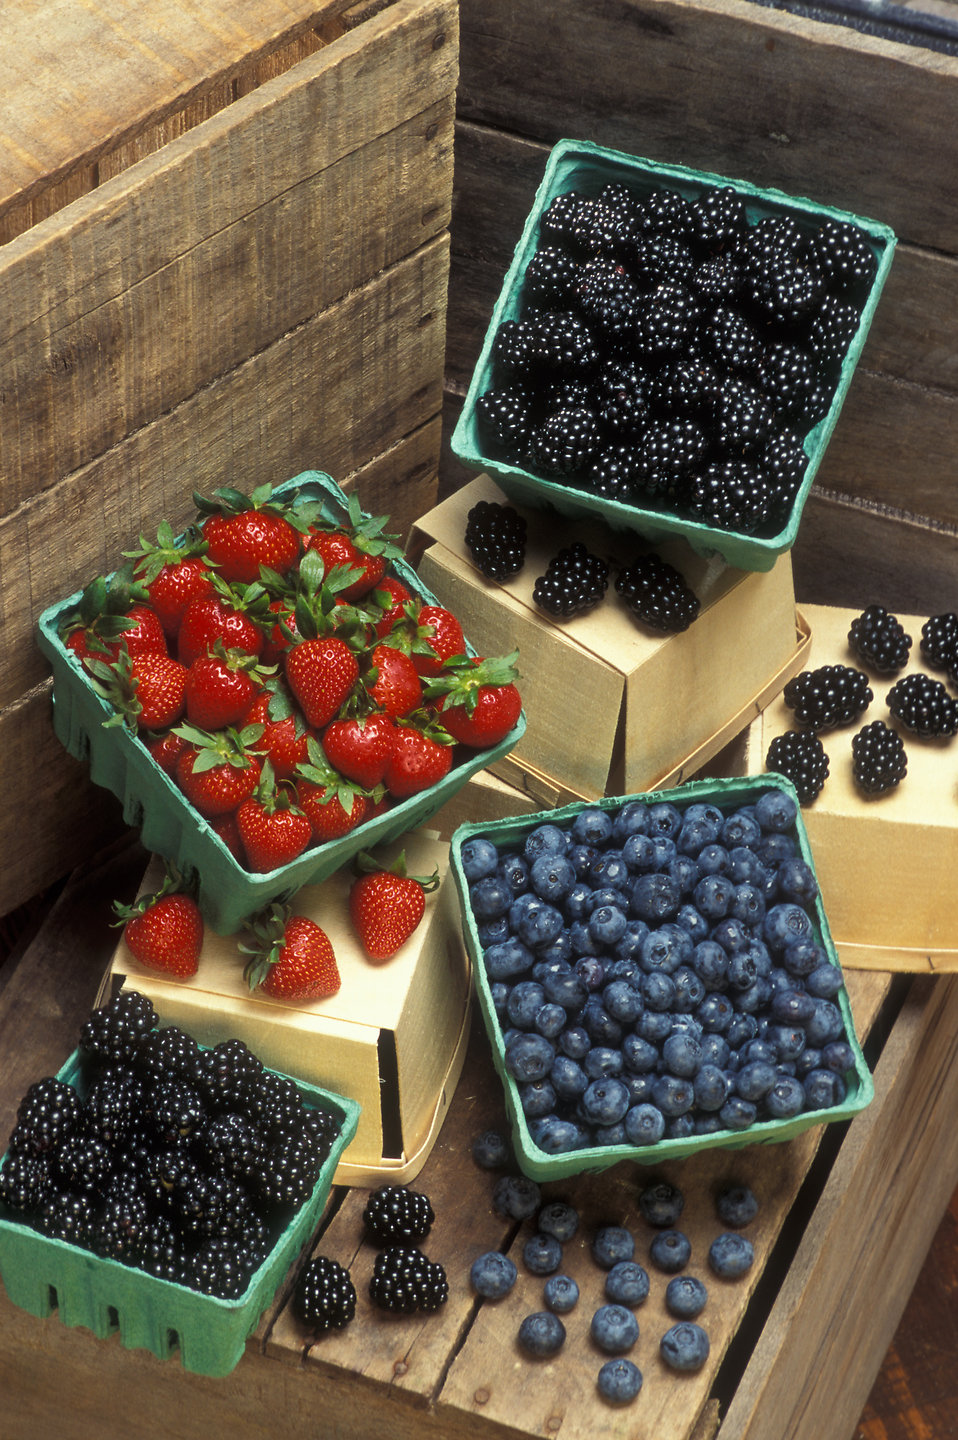 Baskets of strawberries, blueberries and blackberries : Free Stock Photo